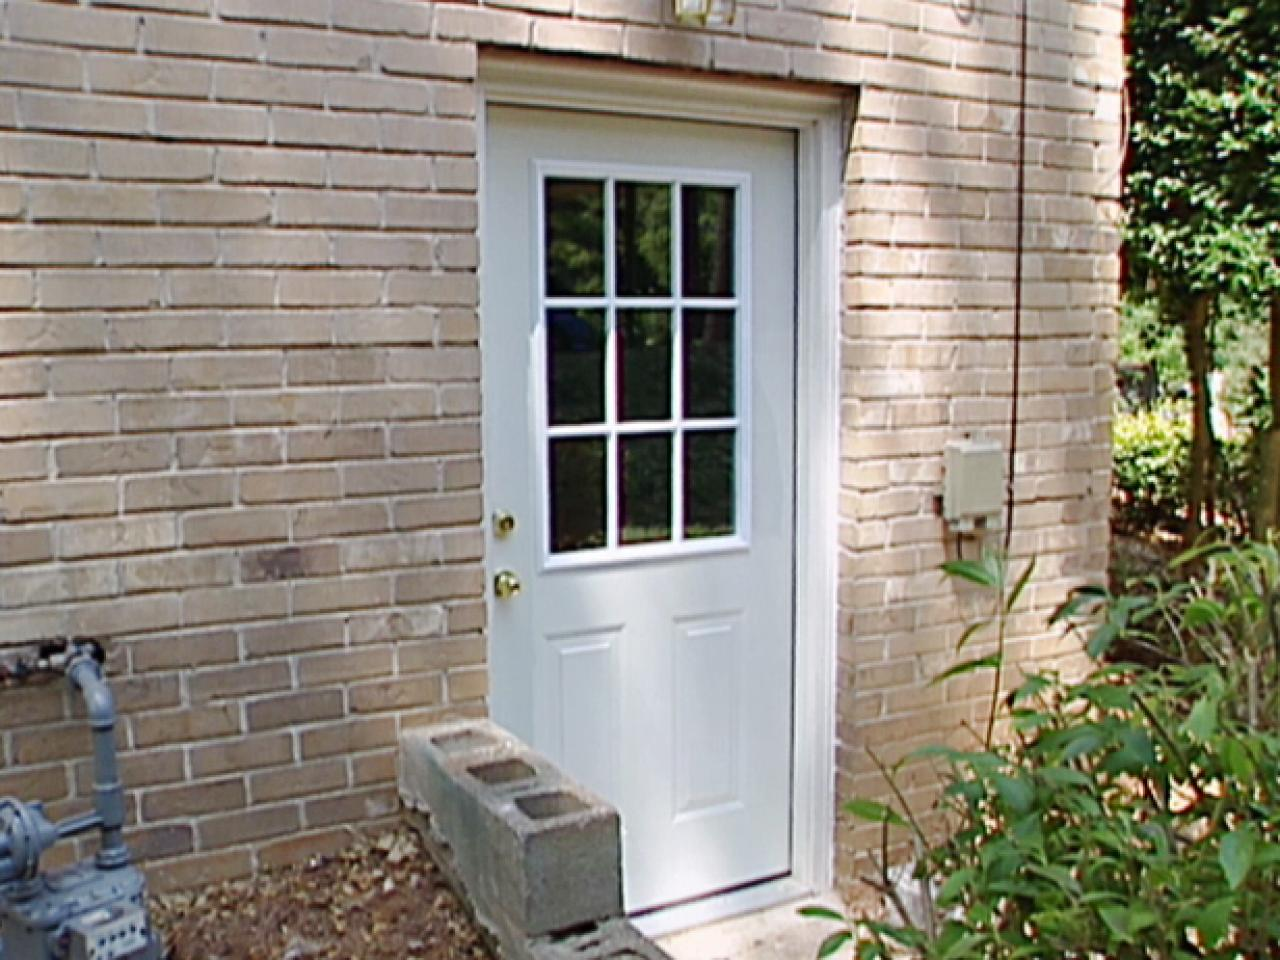 960 #48642D How To Install A Pre Hung Exterior Door How Tos DIY wallpaper Pre Hung Steel Doors 44751280